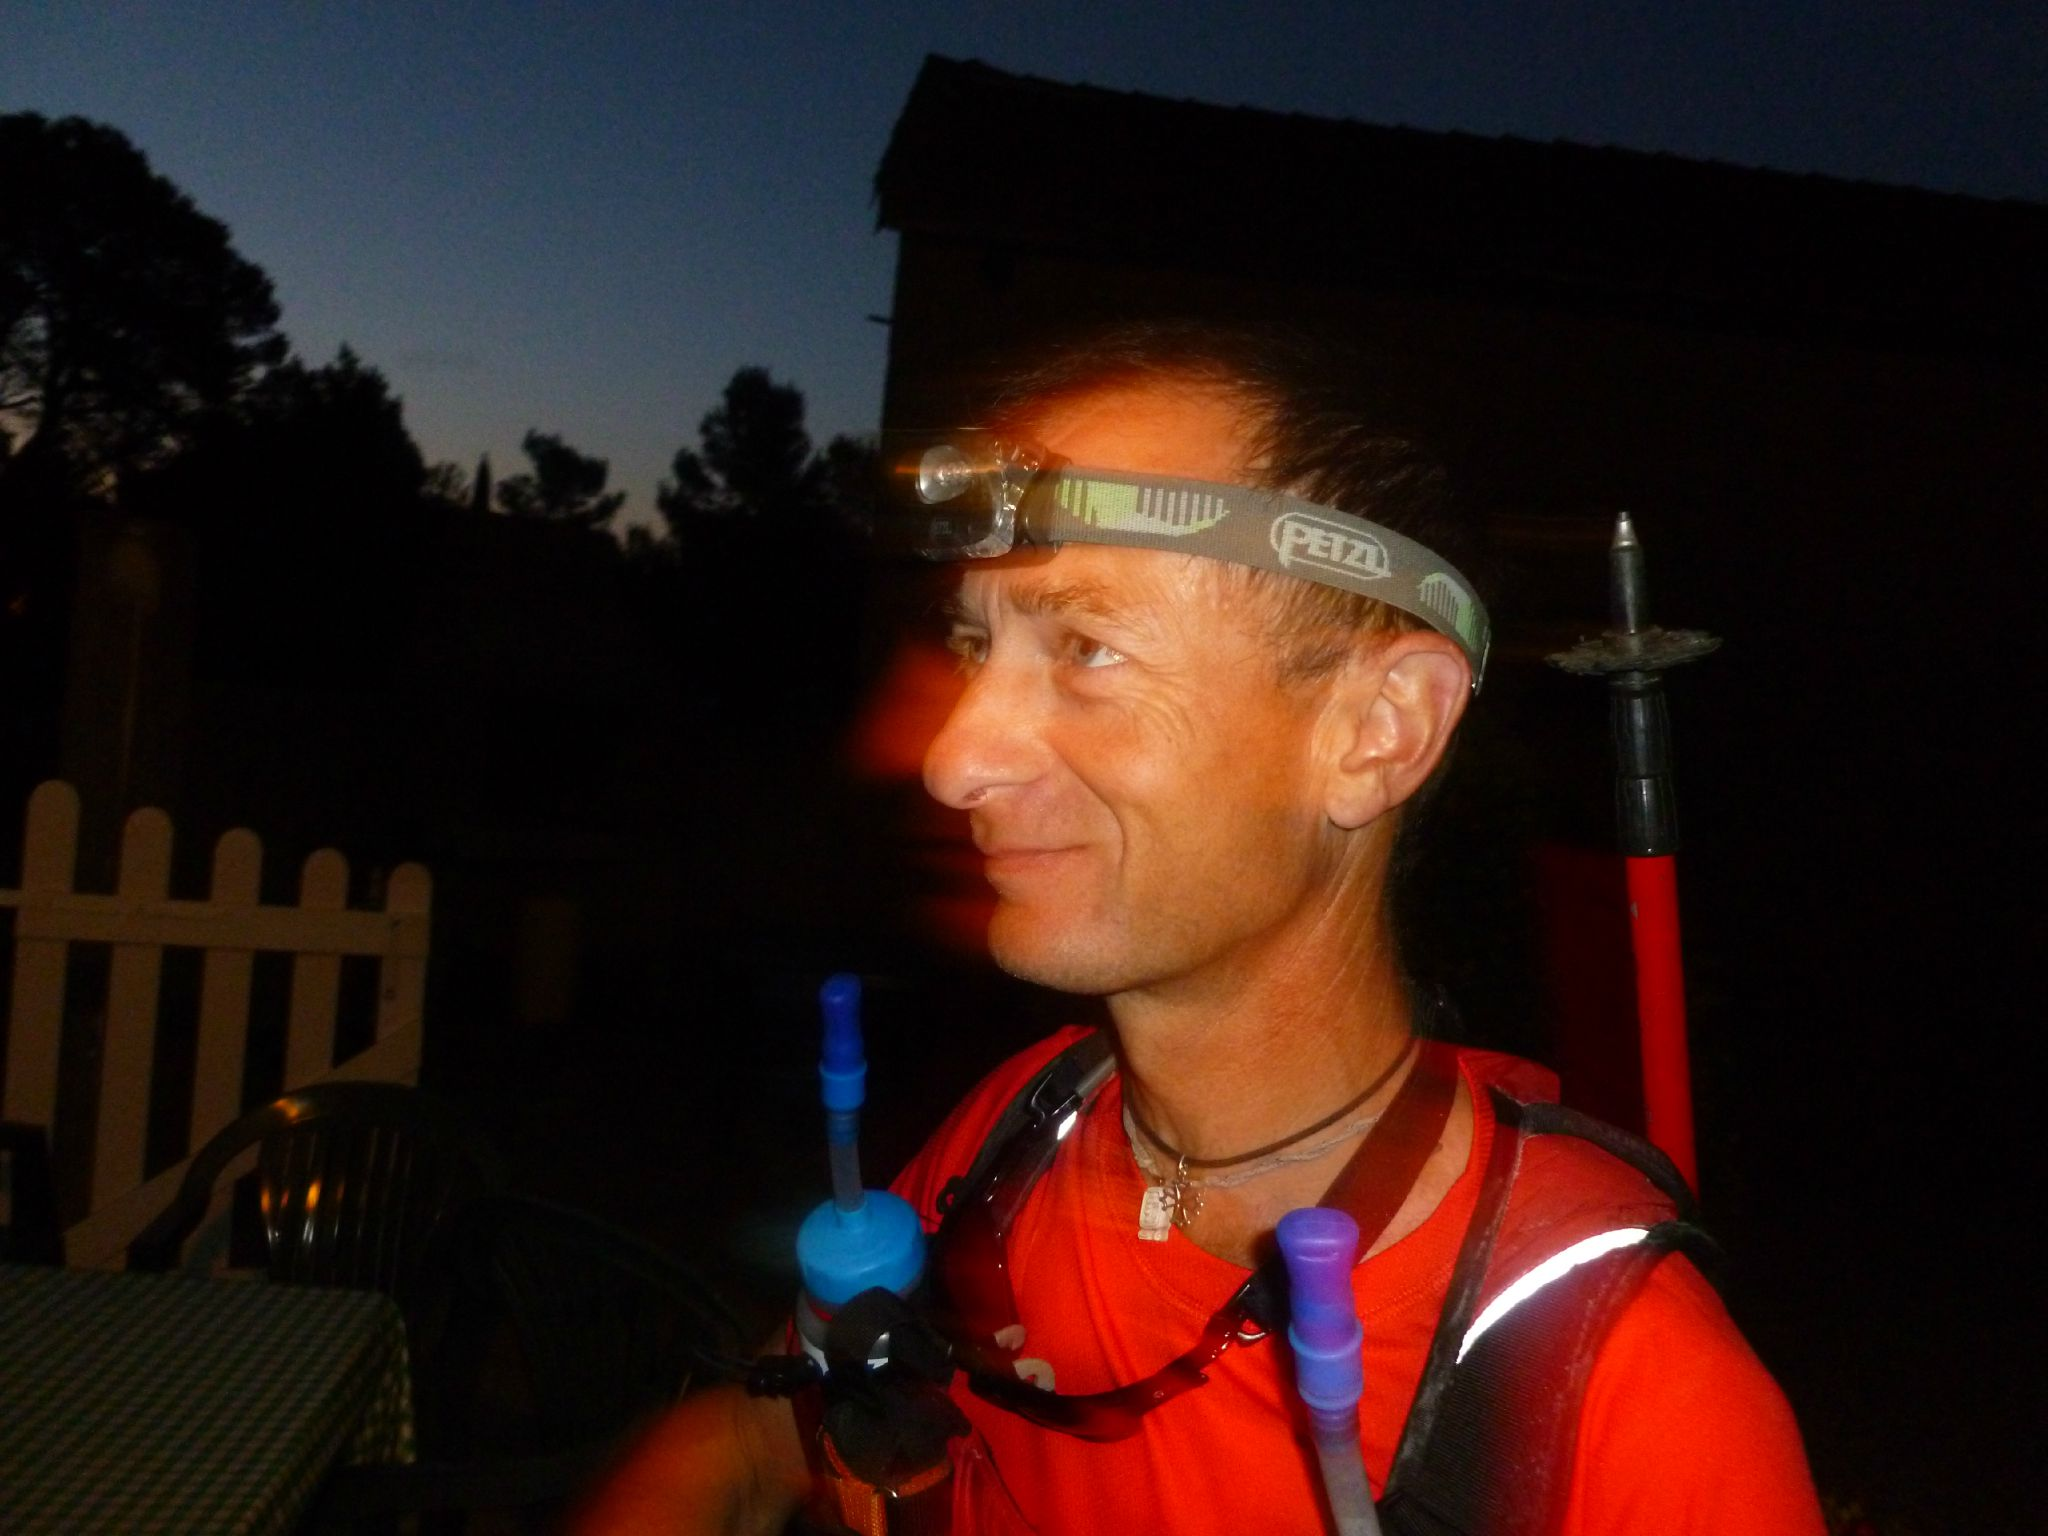 SORTIE 42,8 PIC NORE 12 08 2012 005